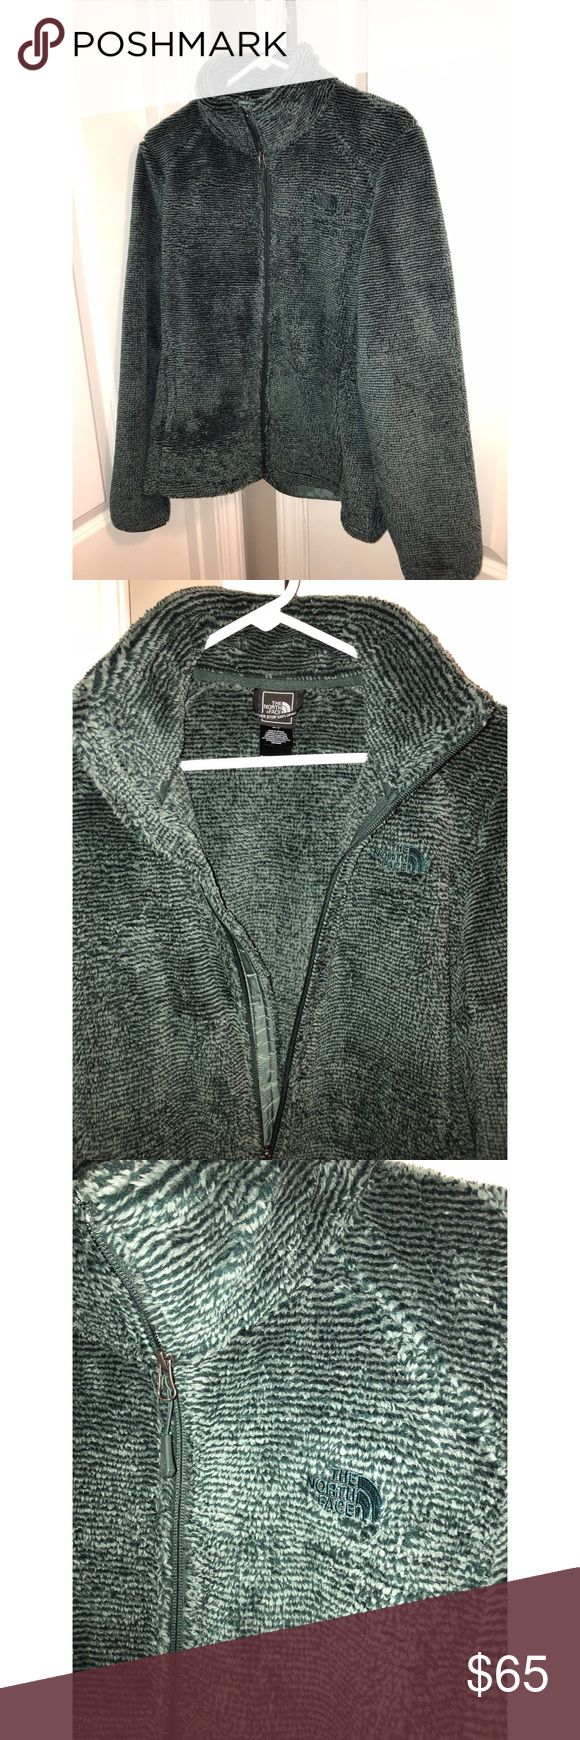 NWOT North Face Osito 2 zip up size Large No trades.... new without tags, The North Face Osito 2 fleece jacket in balsam green stripe. Women's size large. The North Face Jackets & Coats